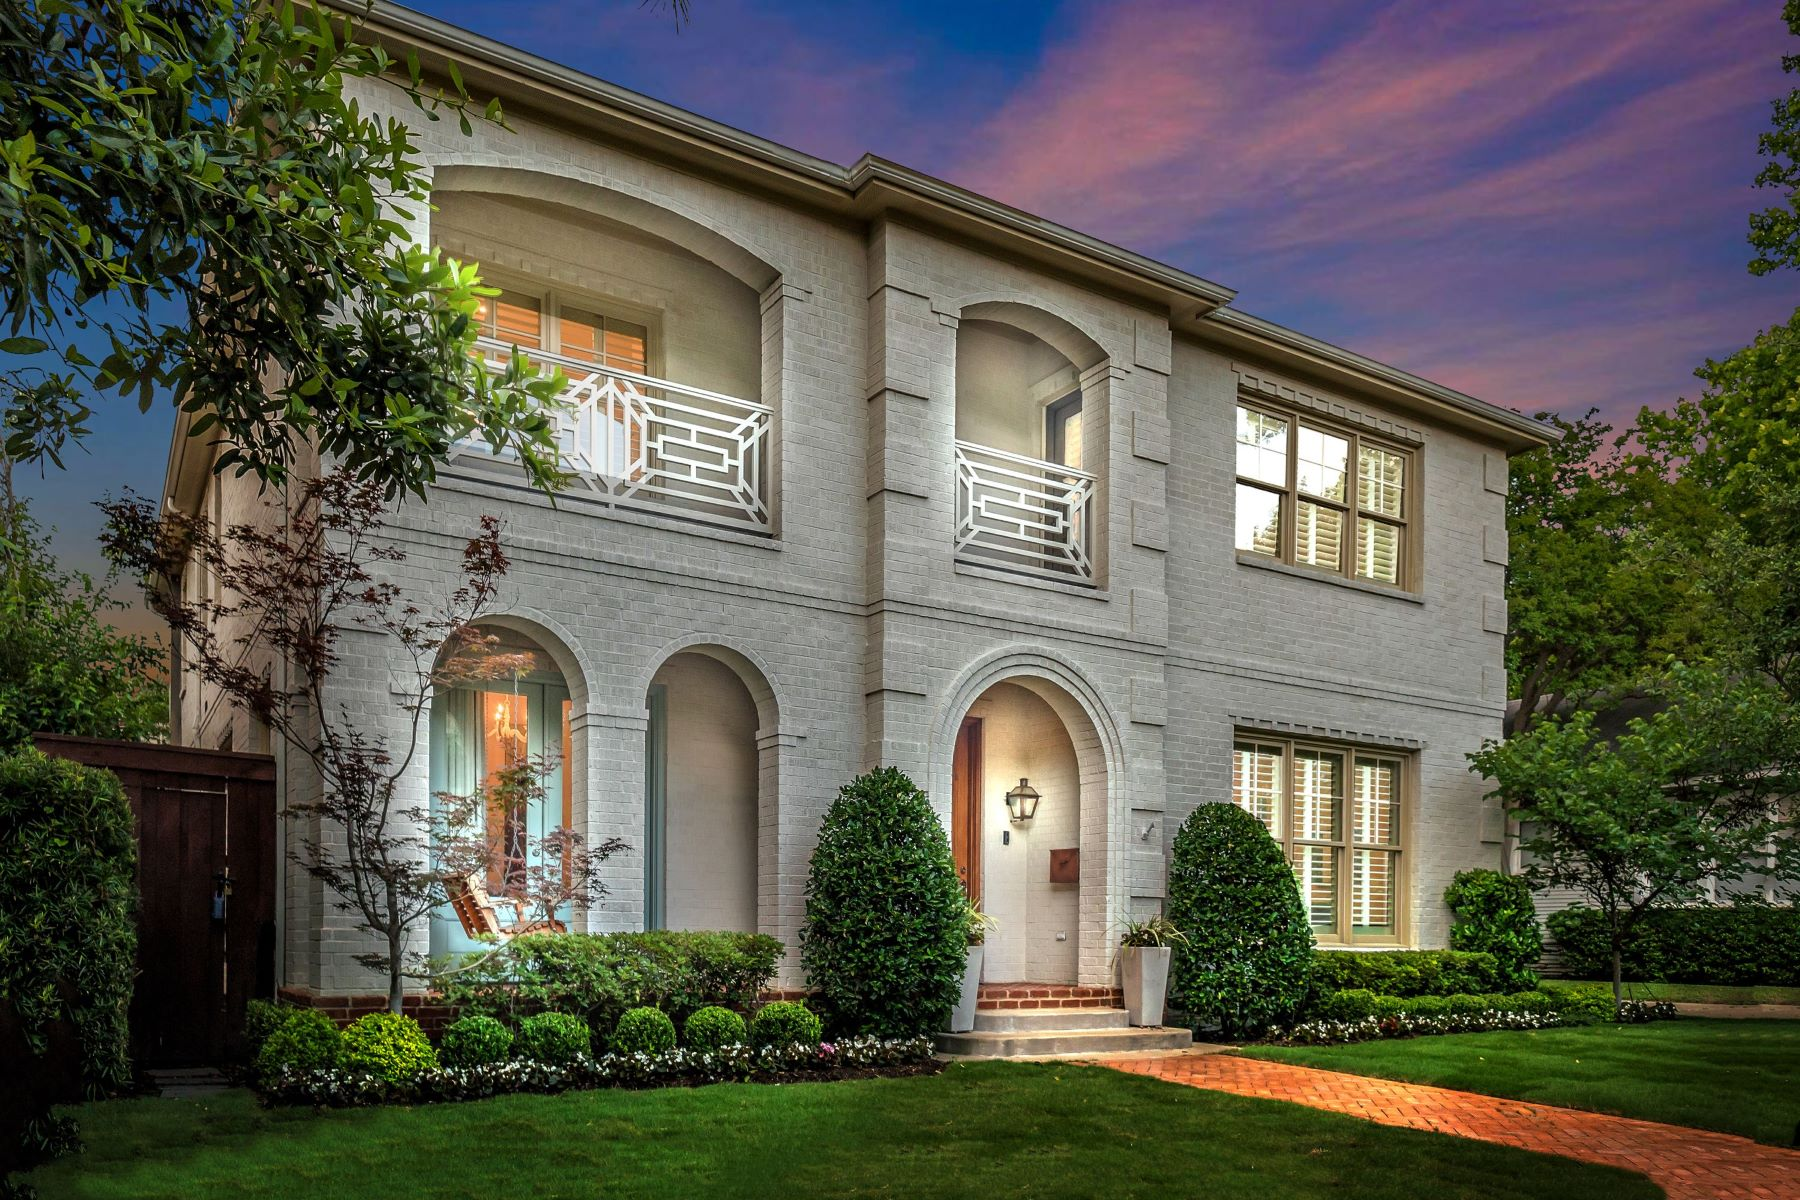 Single Family Homes for Sale at Low Maintenance, High Style in University Park 3626 Granada Avenue University Park, Texas 75205 United States